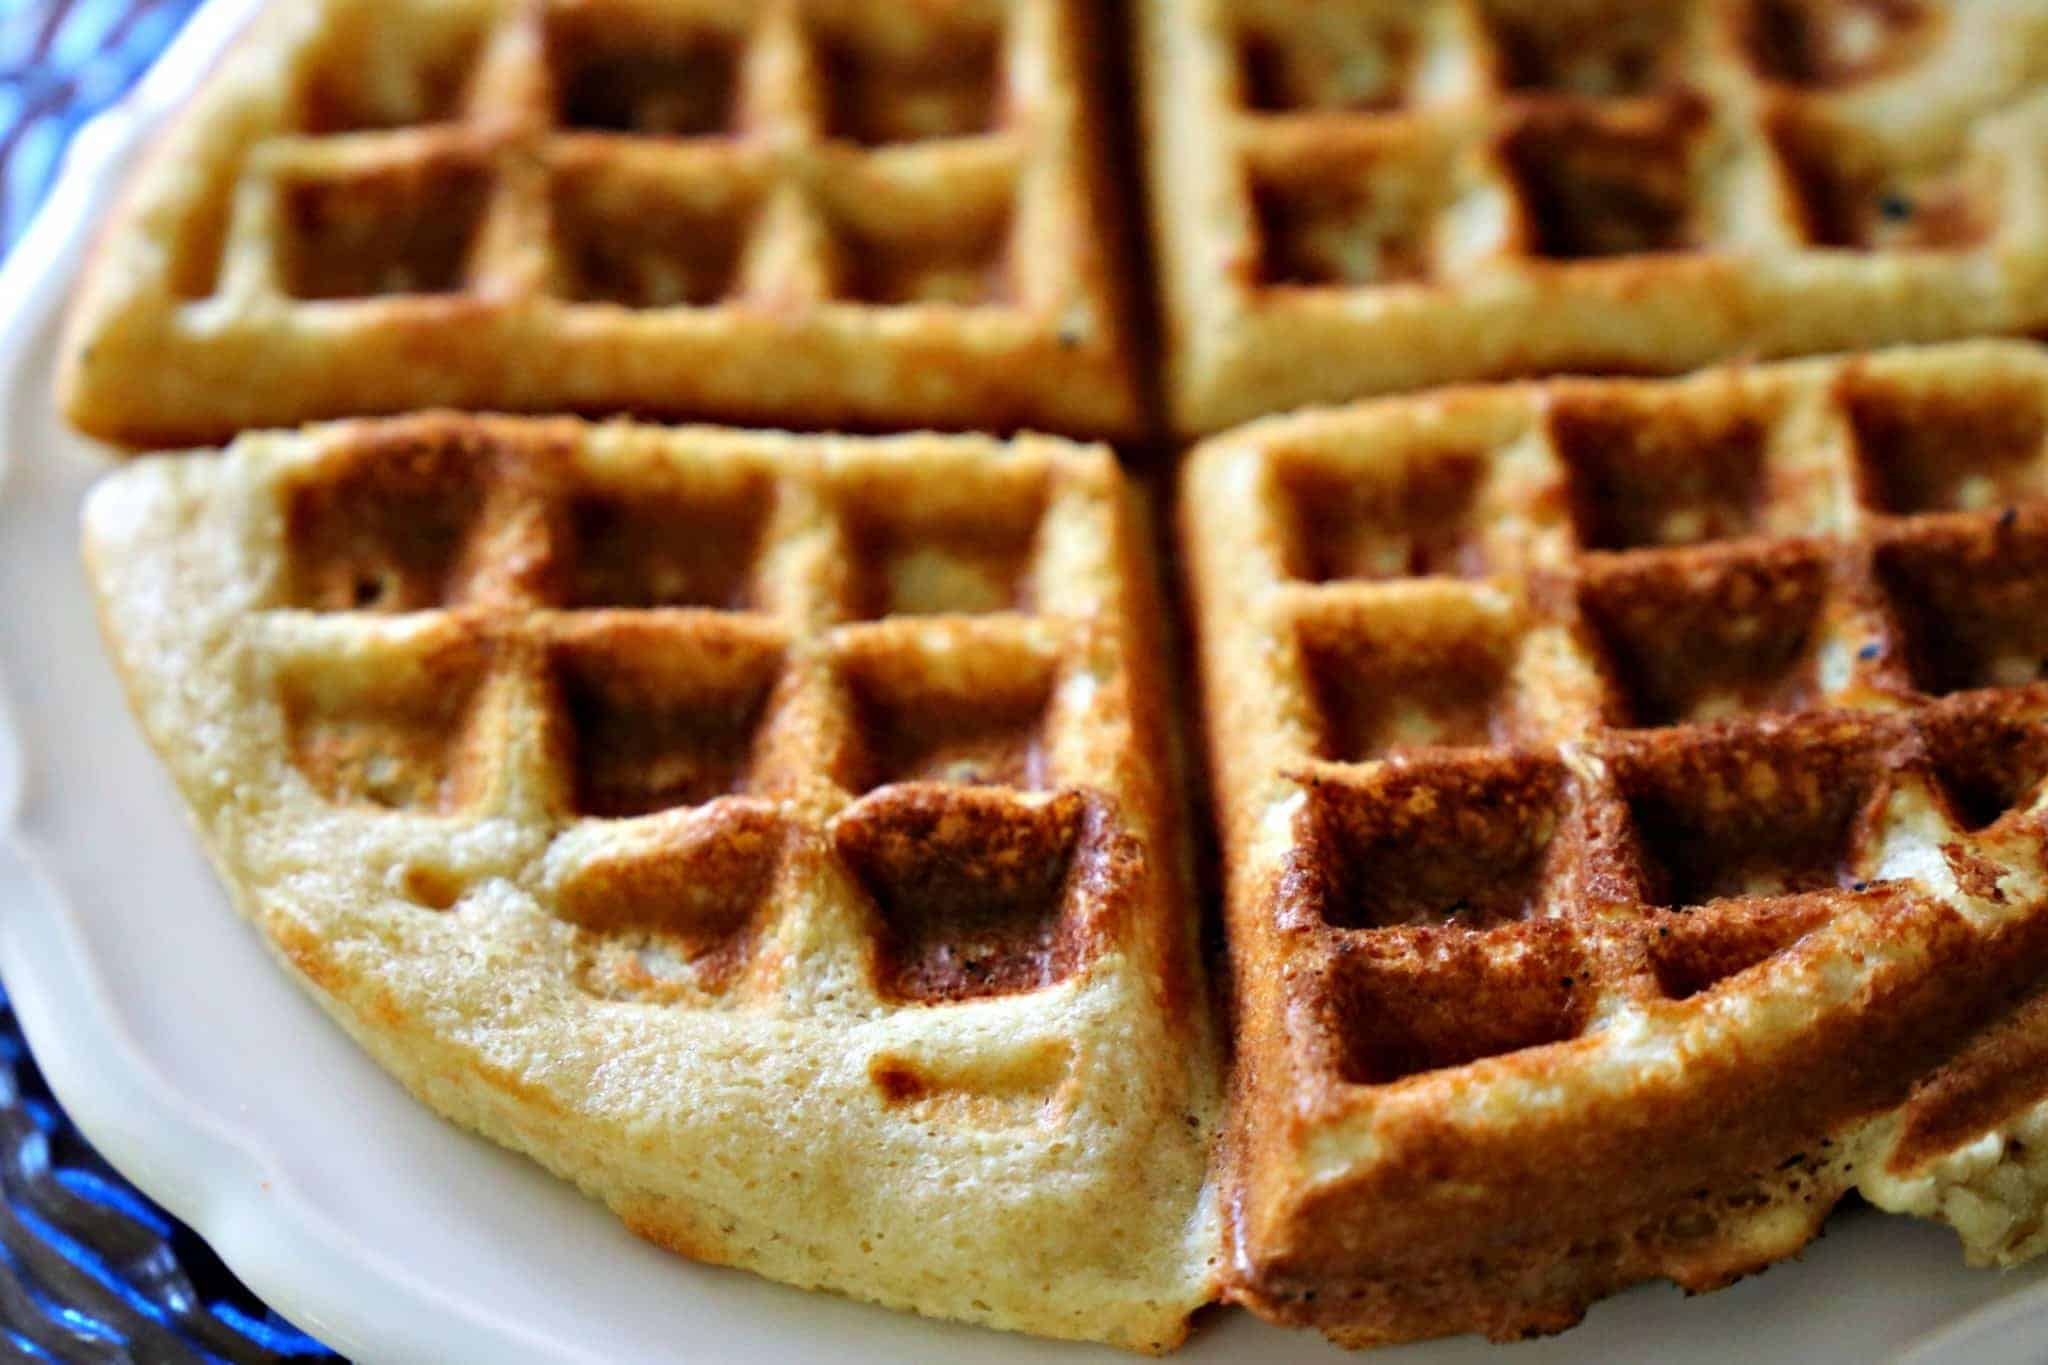 Crispy Belgian Waffles From Without Grain